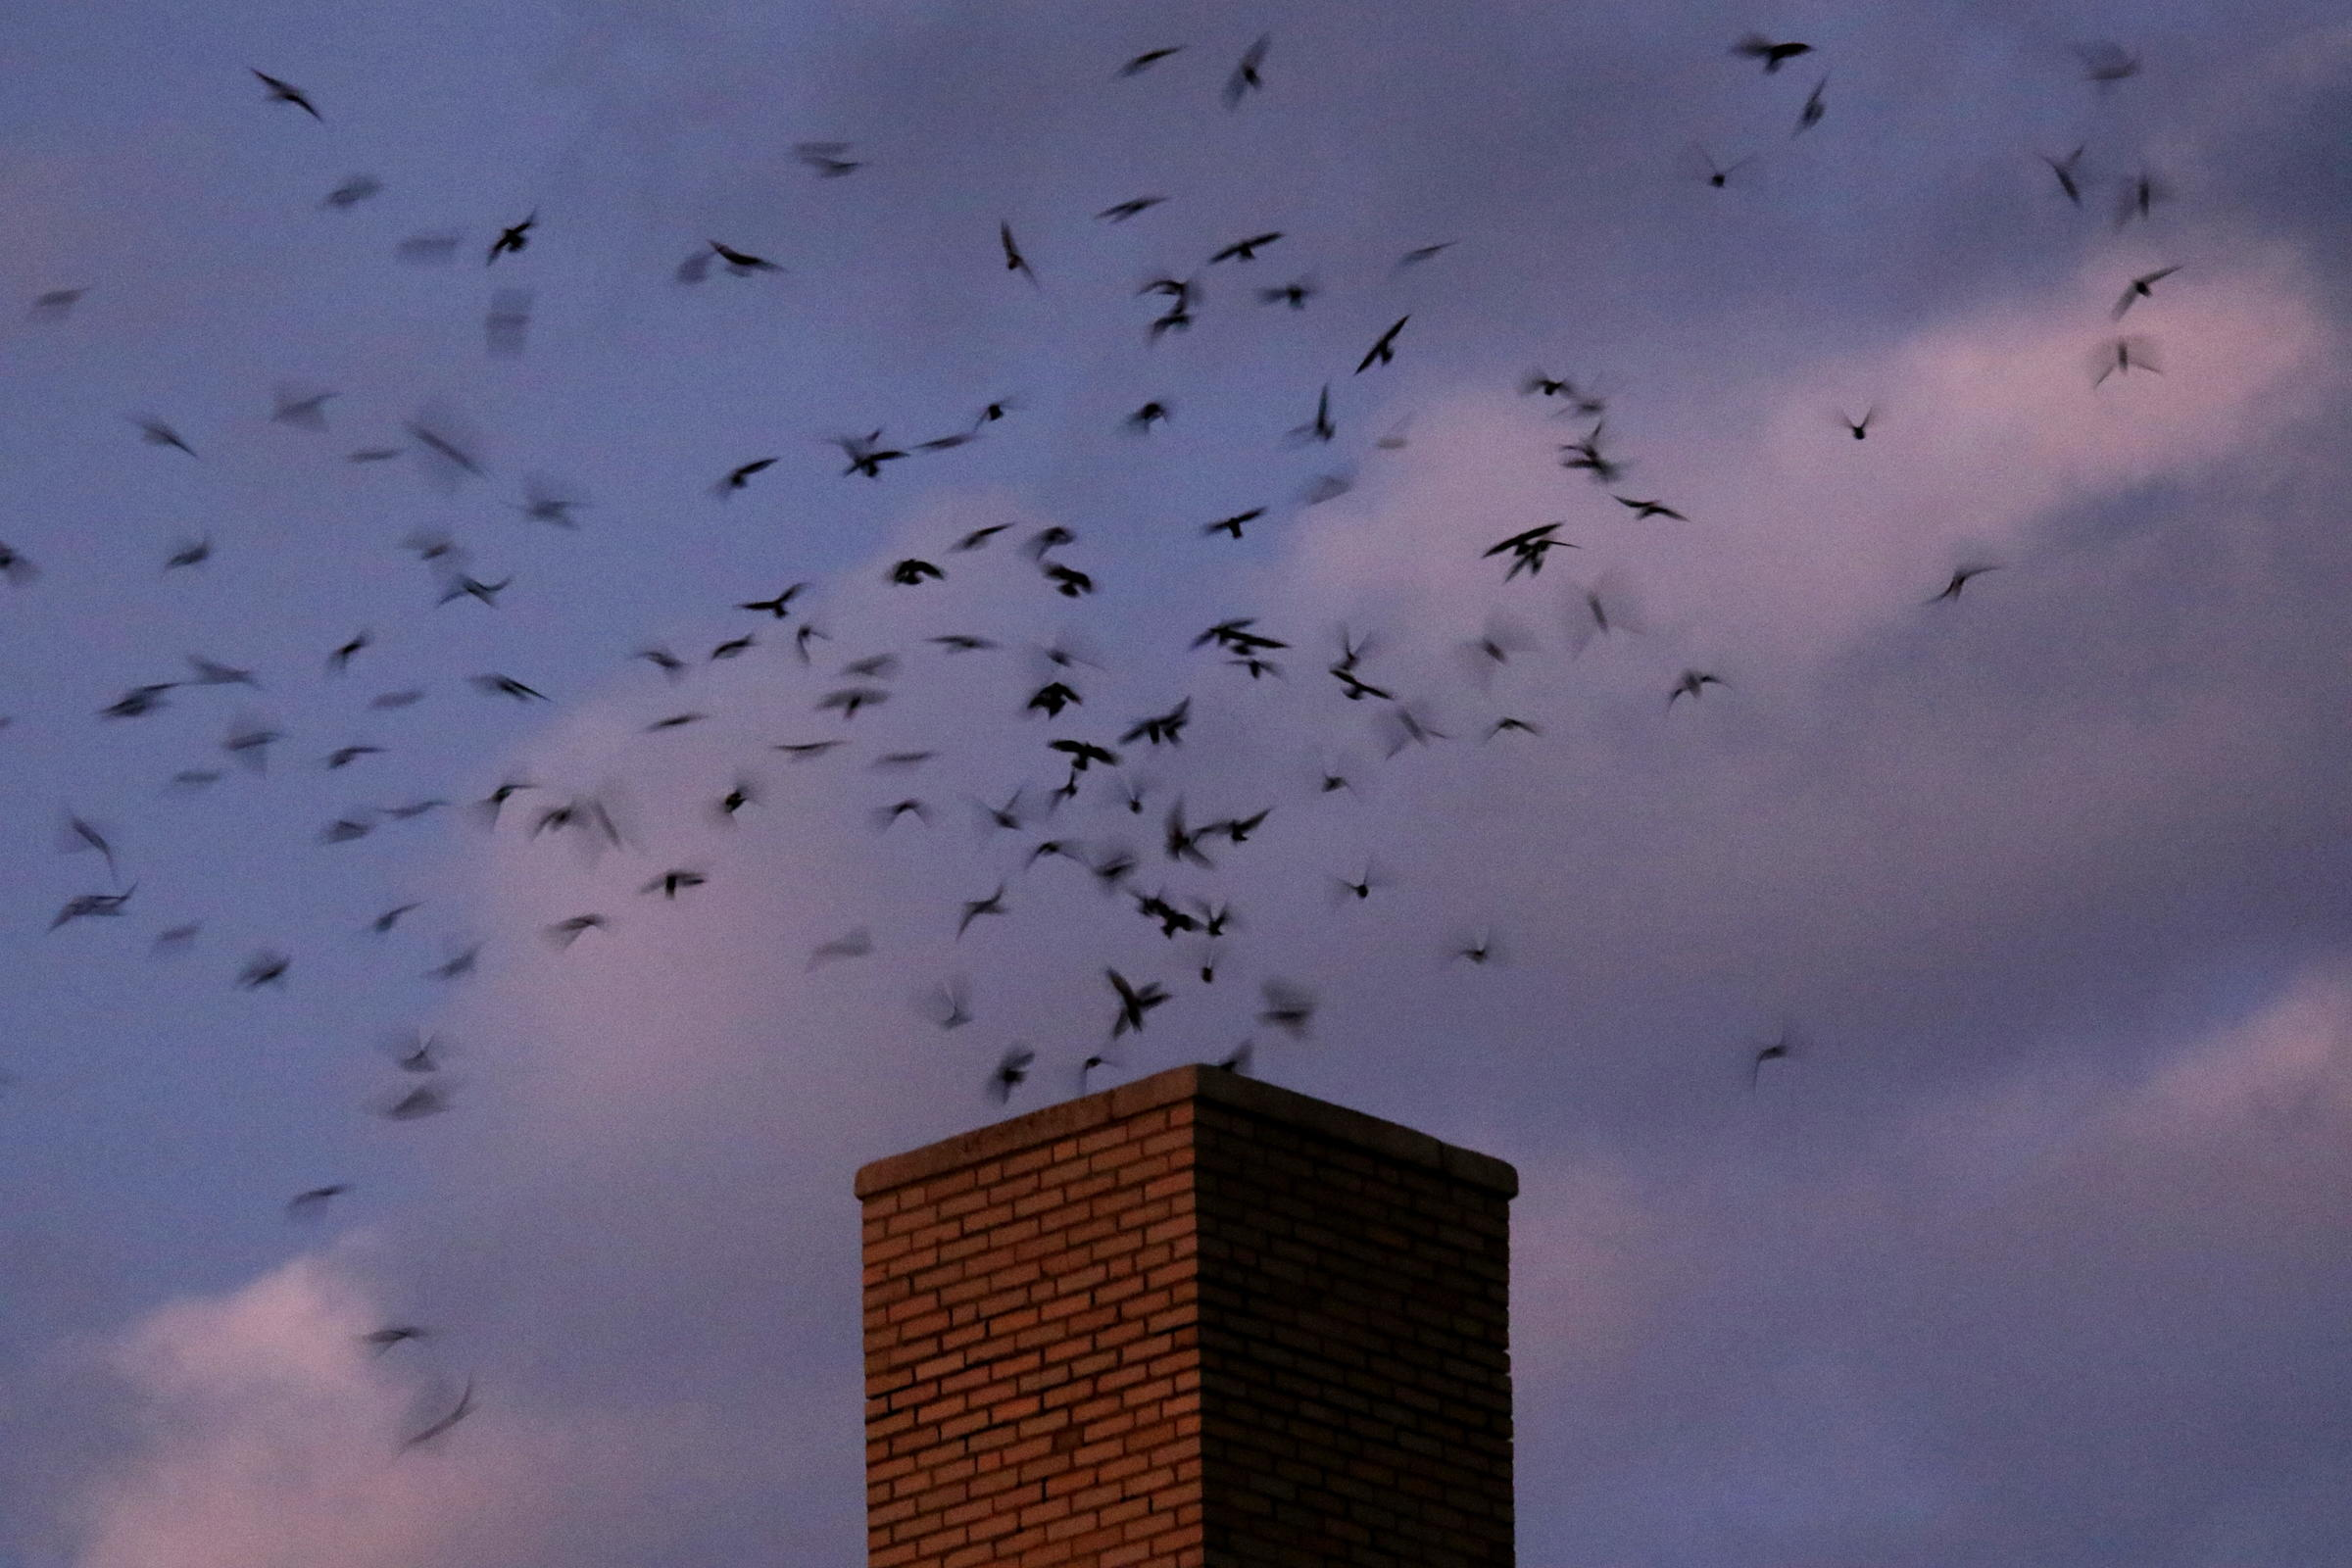 Chimney Swifts roosting